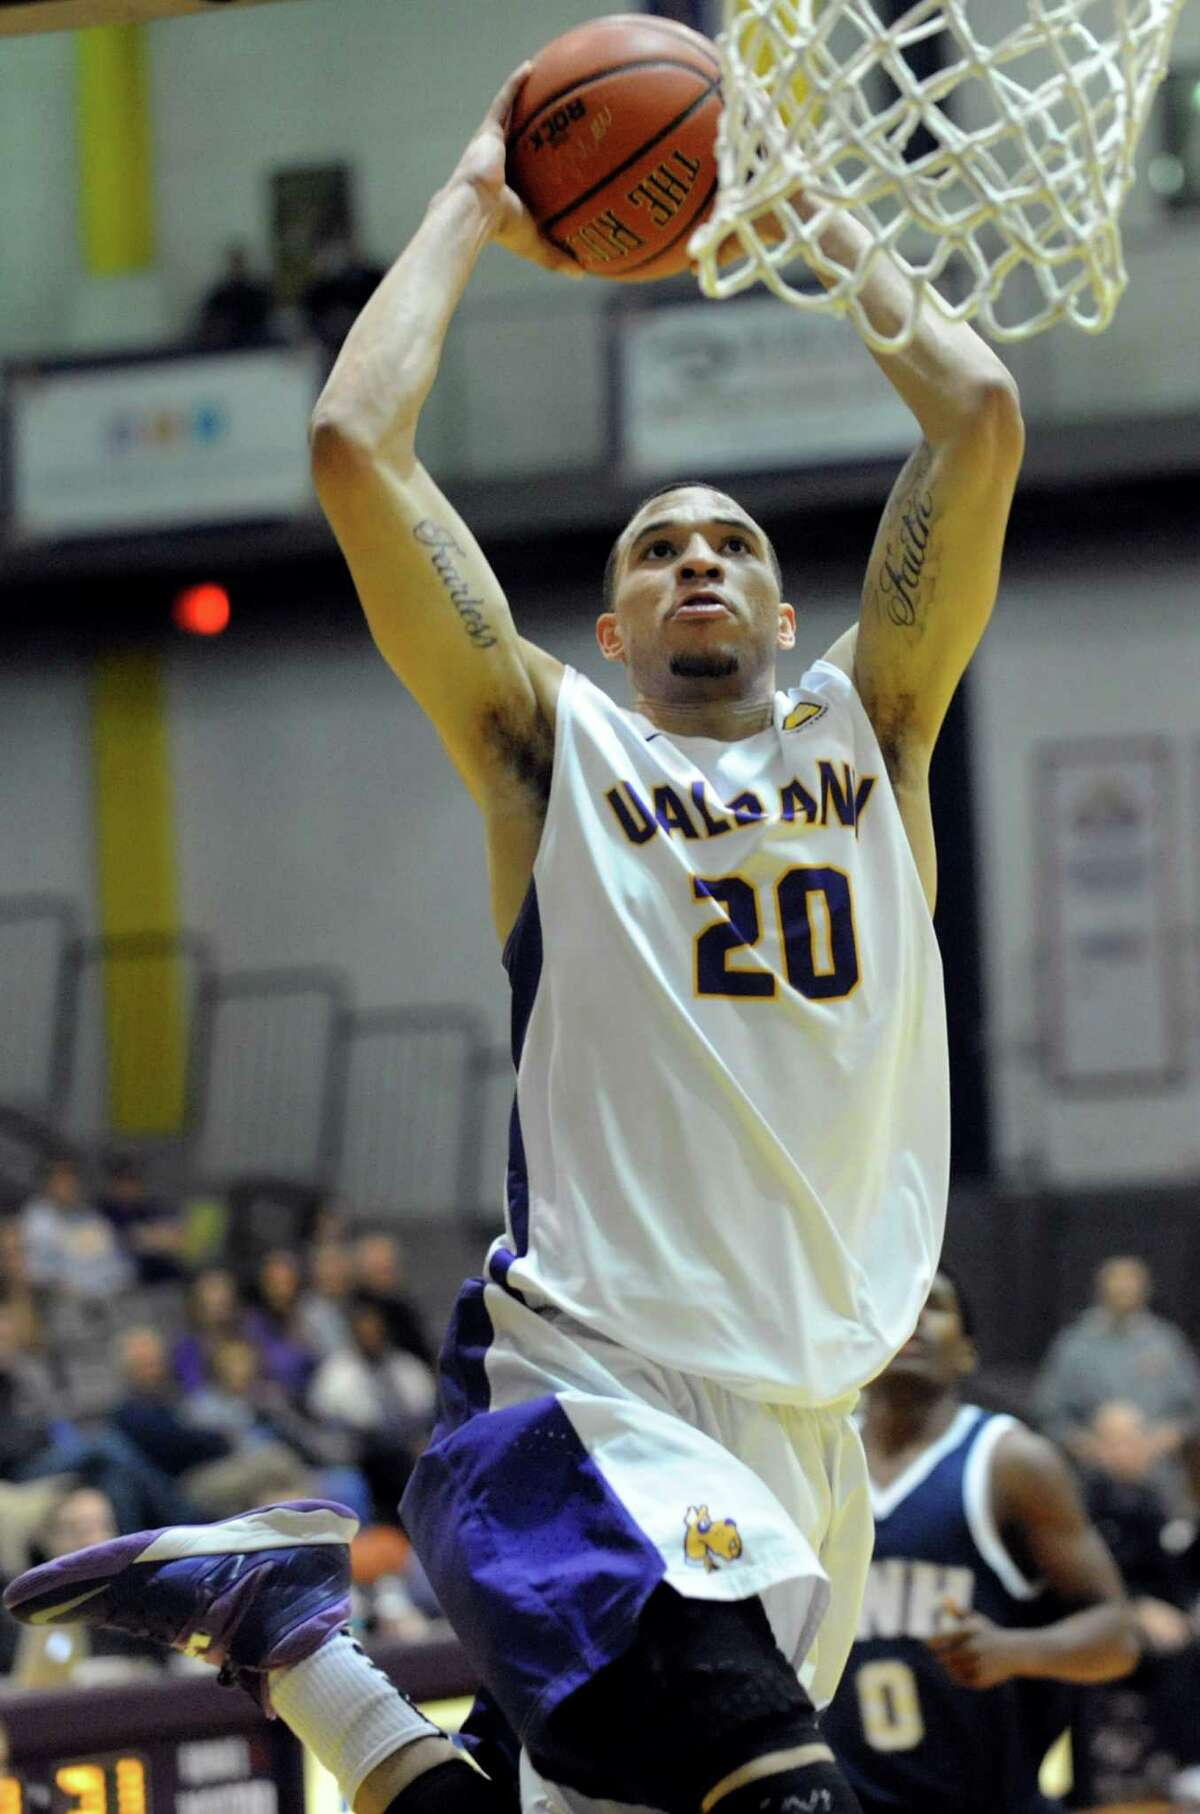 UAlbany's Gary Johnson goes to the hoop during their basketball game against New Hampshire on Thursday, Feb. 27, 2014, UAlbany in Albany, N.Y. (Cindy Schultz / Times Union)